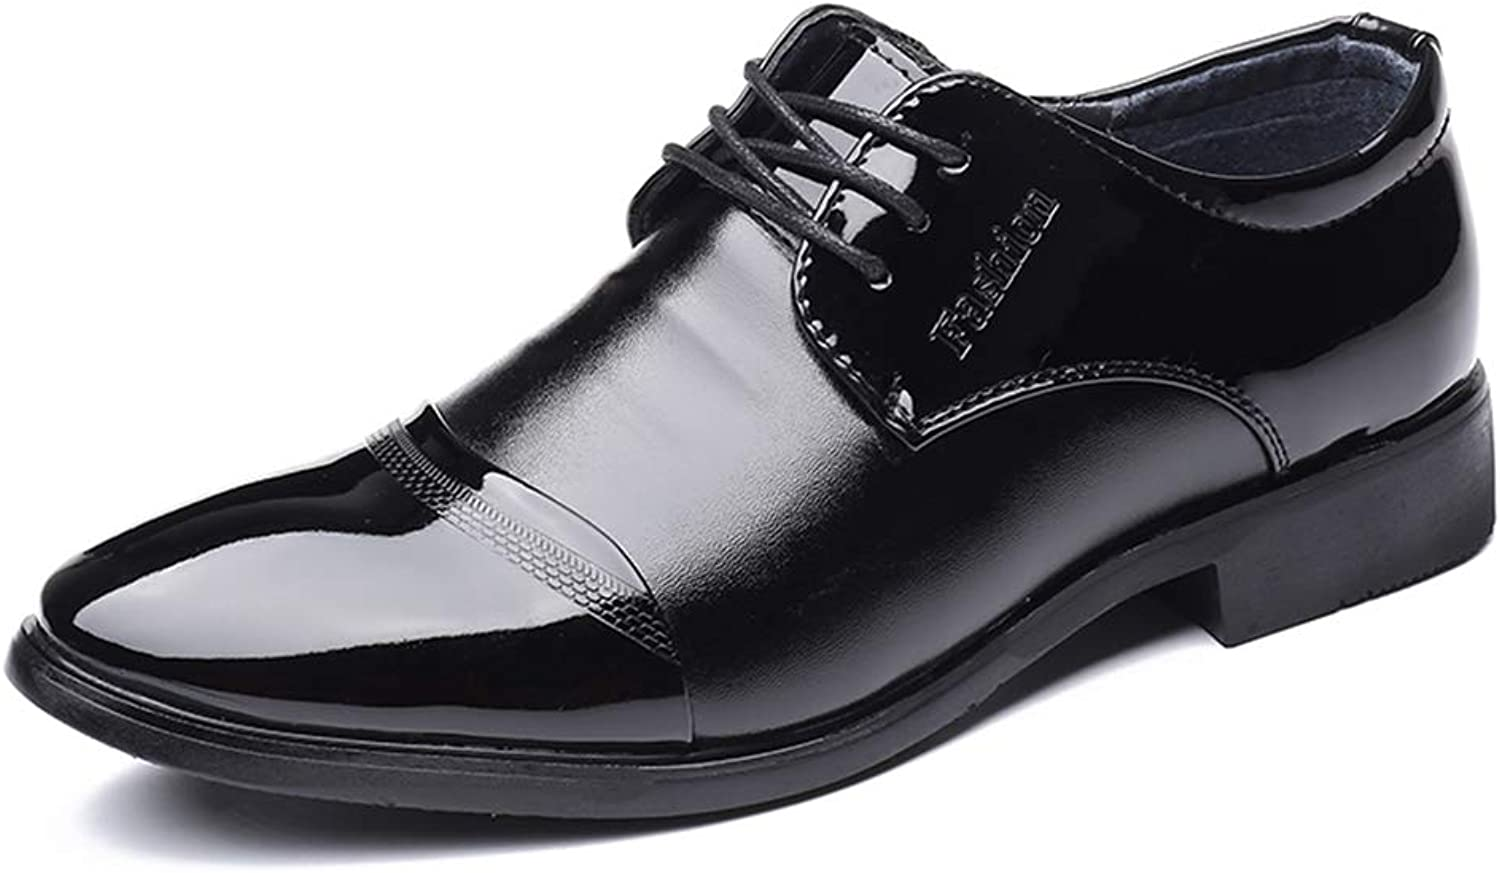 SRY-shoes Men's Fashion Business Oxford Casual Comfortable Classic Simple Pure color Sole Patent Leather Formal shoes